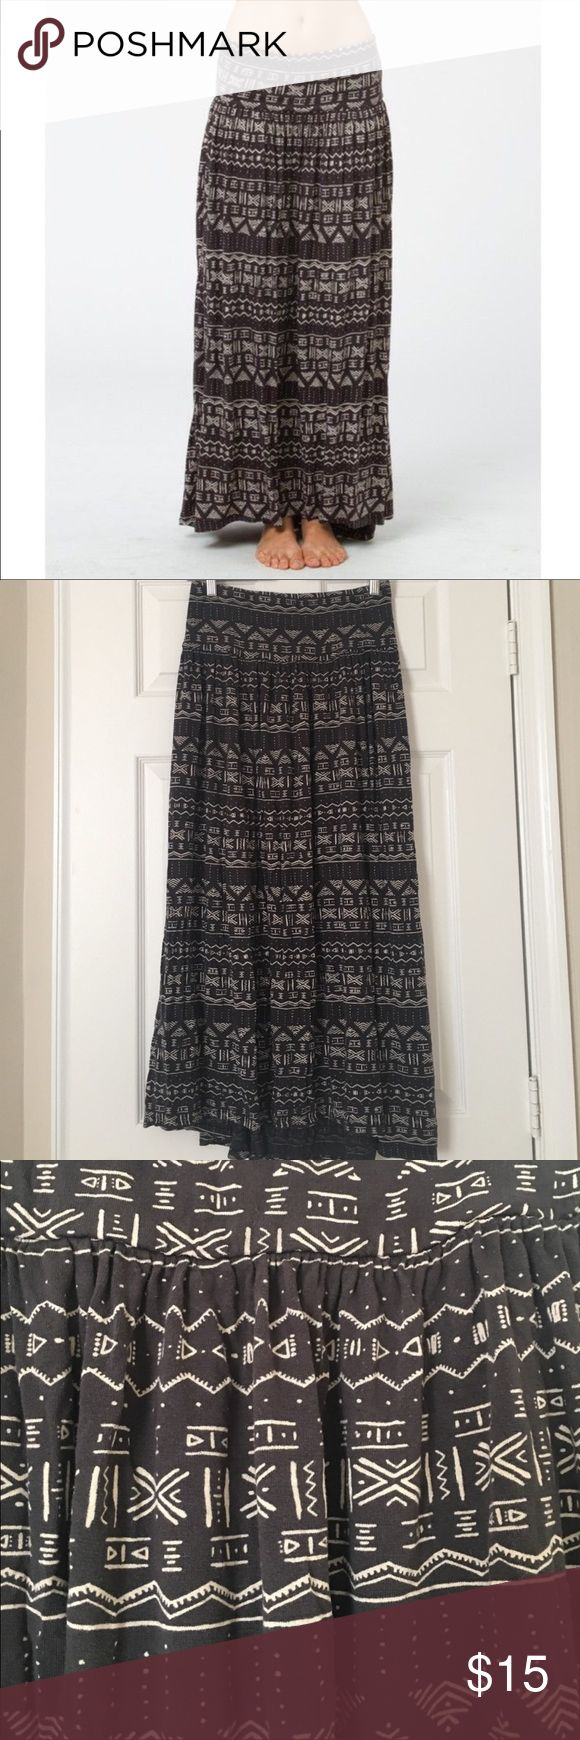 """Billabong Designer Closet Tribal Maxi Skirt Off black with cream tribal print. Size Small. Elastic waist. Slightly longer in the back for that cute boho look. Waist measures 13.5"""" (unstretched), Length front 35"""" Billabong Skirts Maxi"""